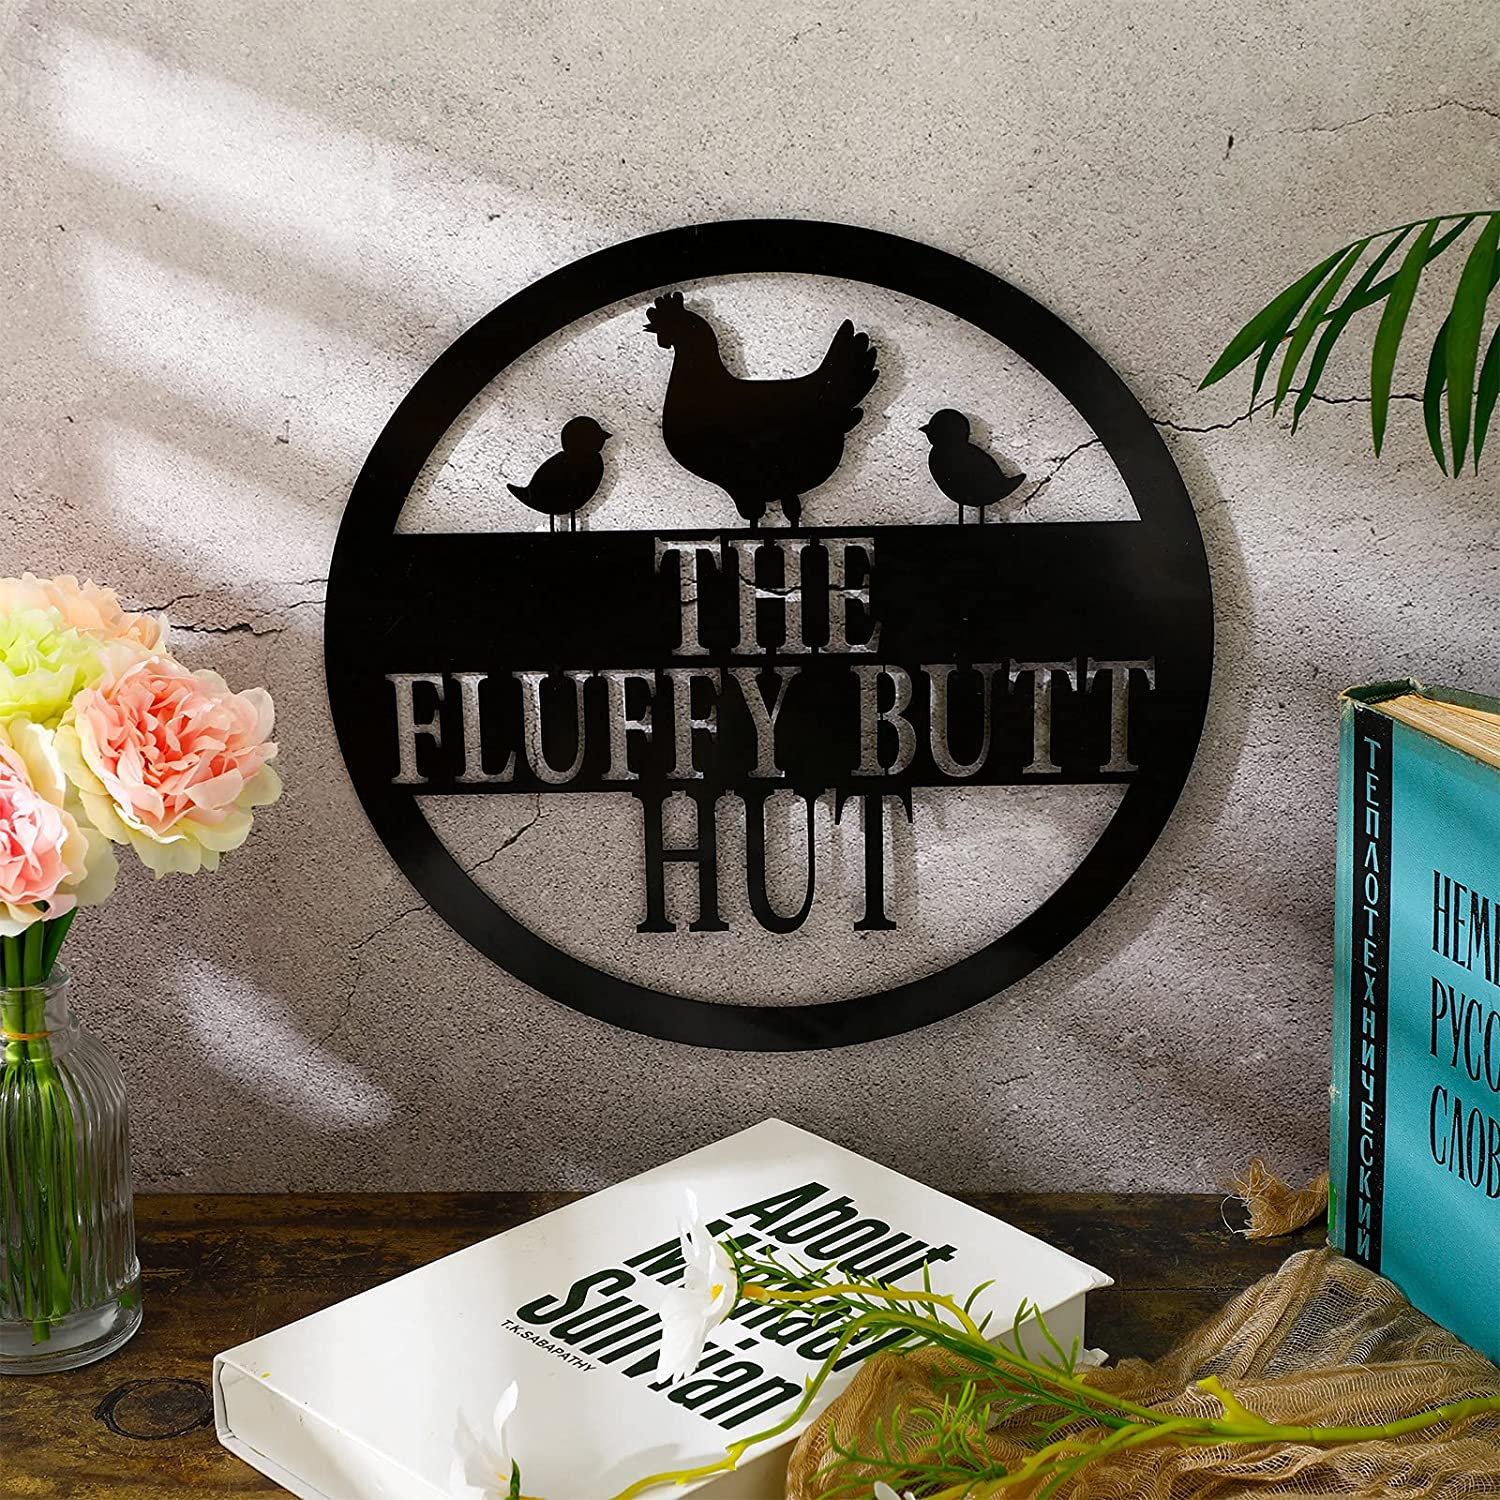 Chicken Coop Sign Fluffy Butt Hut Metal Sign Funny Chicken Coop Decor Farmhouse Wall Decor Sign Retro Vintage Wall Art Sign Wall Plaque for Kitchen Farm Home Office Chicken Shed Outdoor Decoration